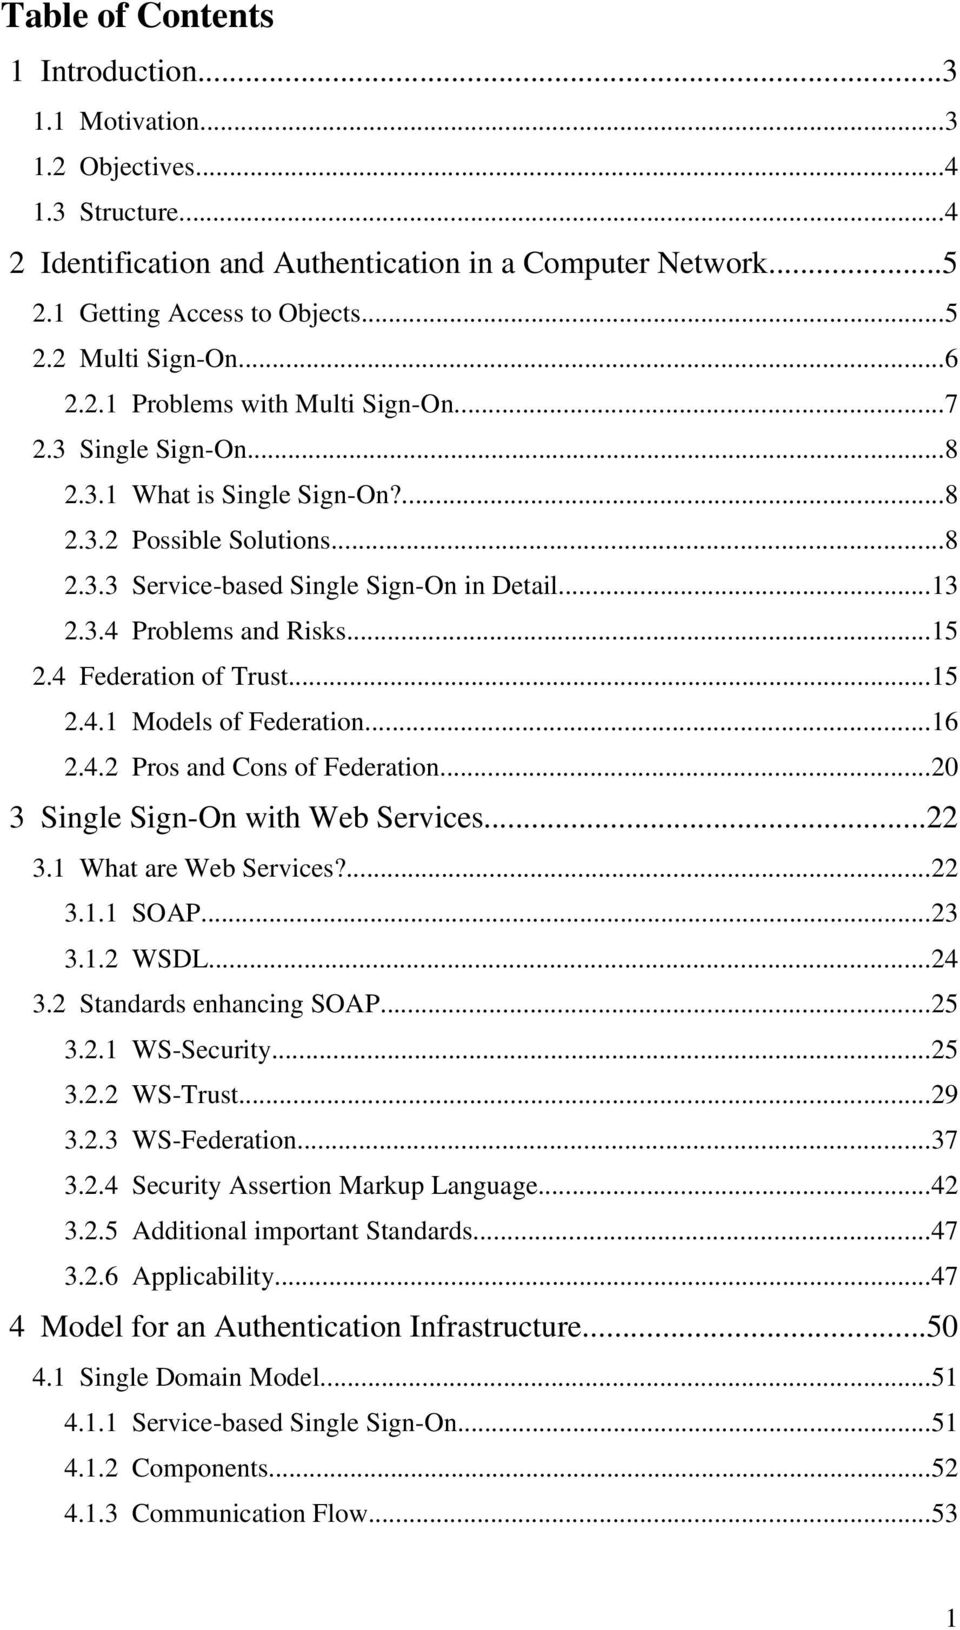 ..15 2.4 Federation of Trust...15 2.4.1 Models of Federation...16 2.4.2 Pros and Cons of Federation...20 3 Single Sign On with Web Services...22 3.1 What are Web Services?...22 3.1.1 SOAP...23 3.1.2 WSDL.